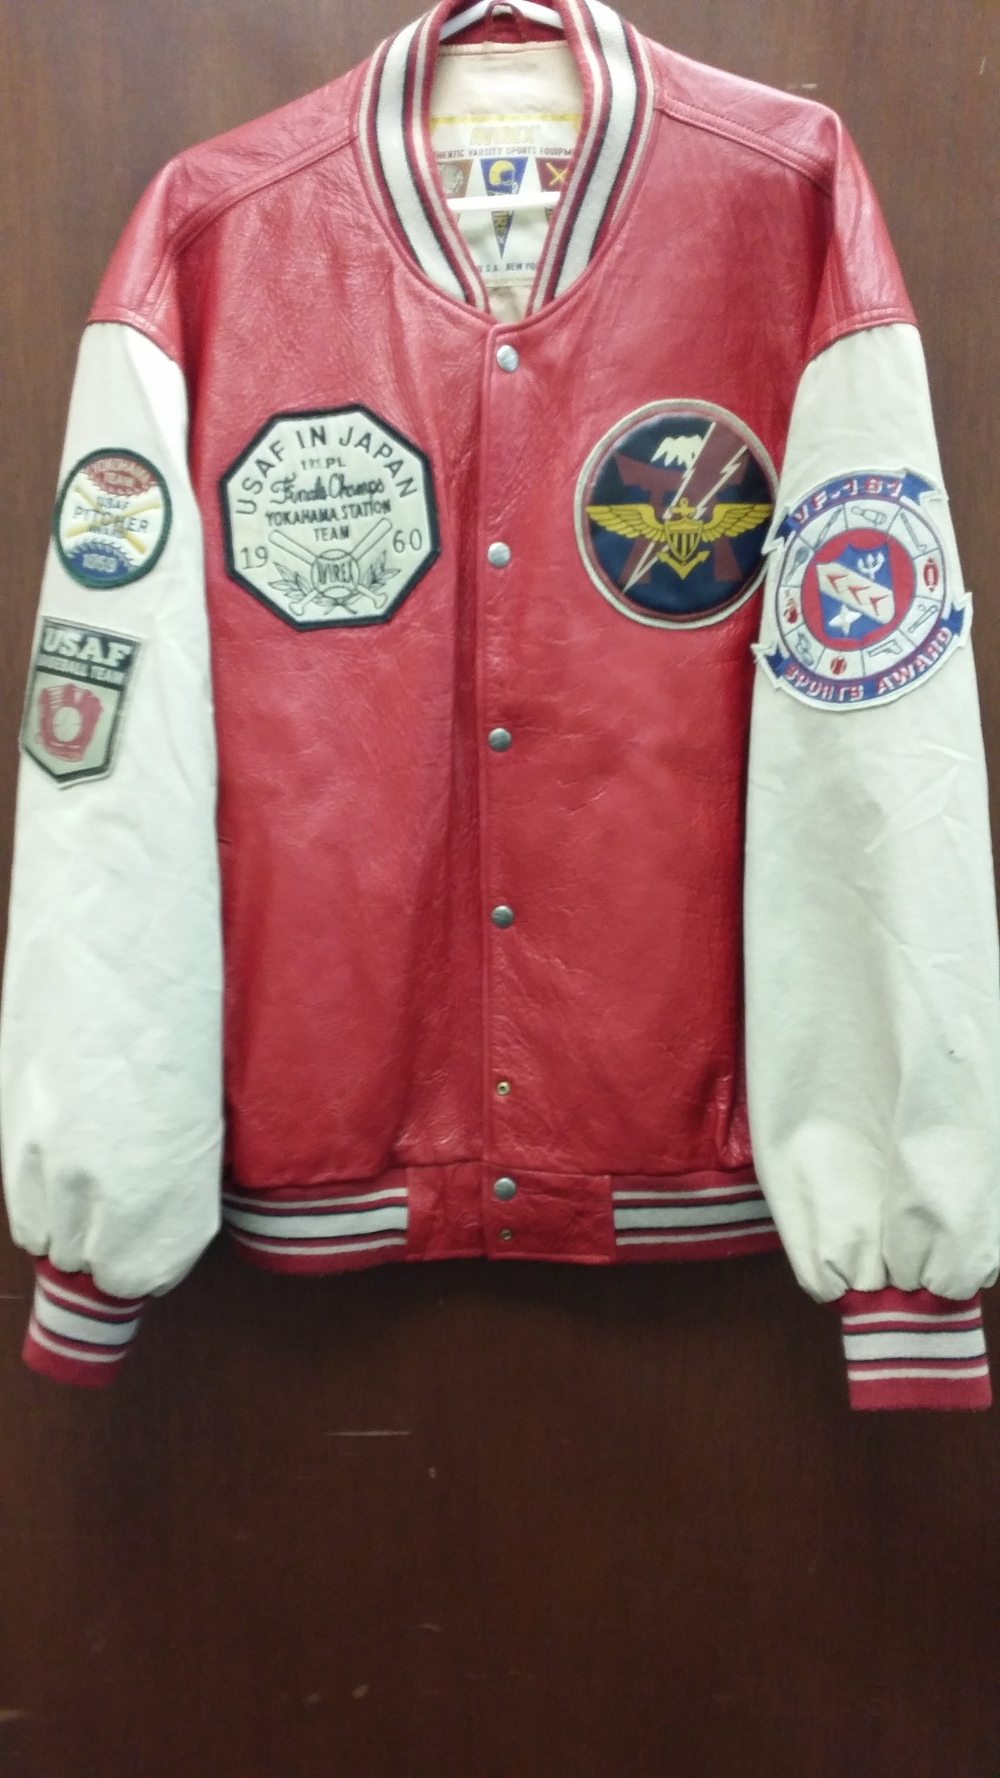 Vintage 1959-1960 USAF Leather Pitchers Jacket. Size 3XL in good condition. Estimated Value: $300 Starting Bid: $180